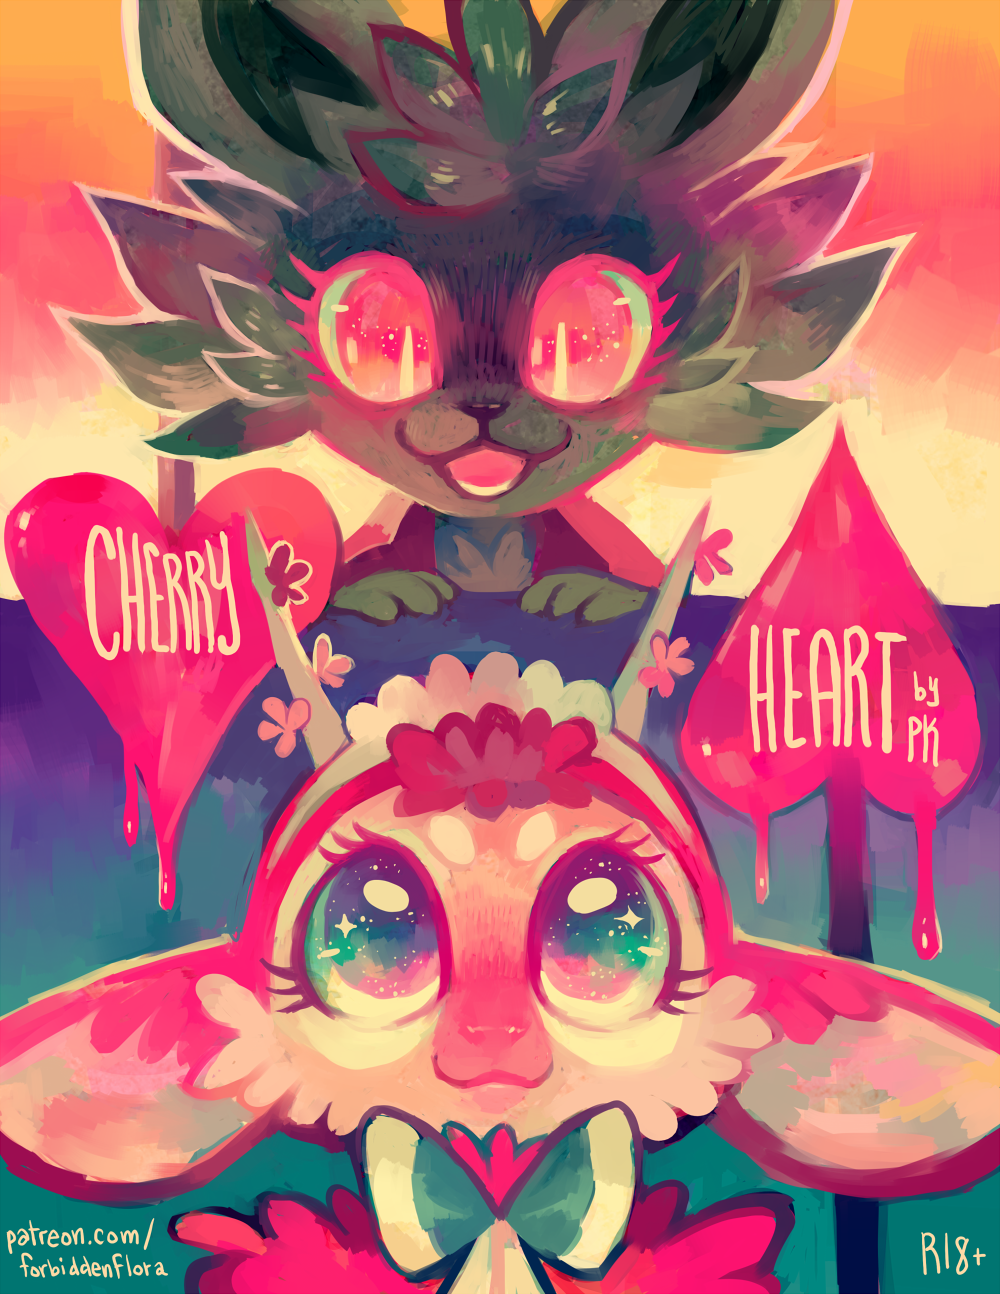 Cherry Heart cover